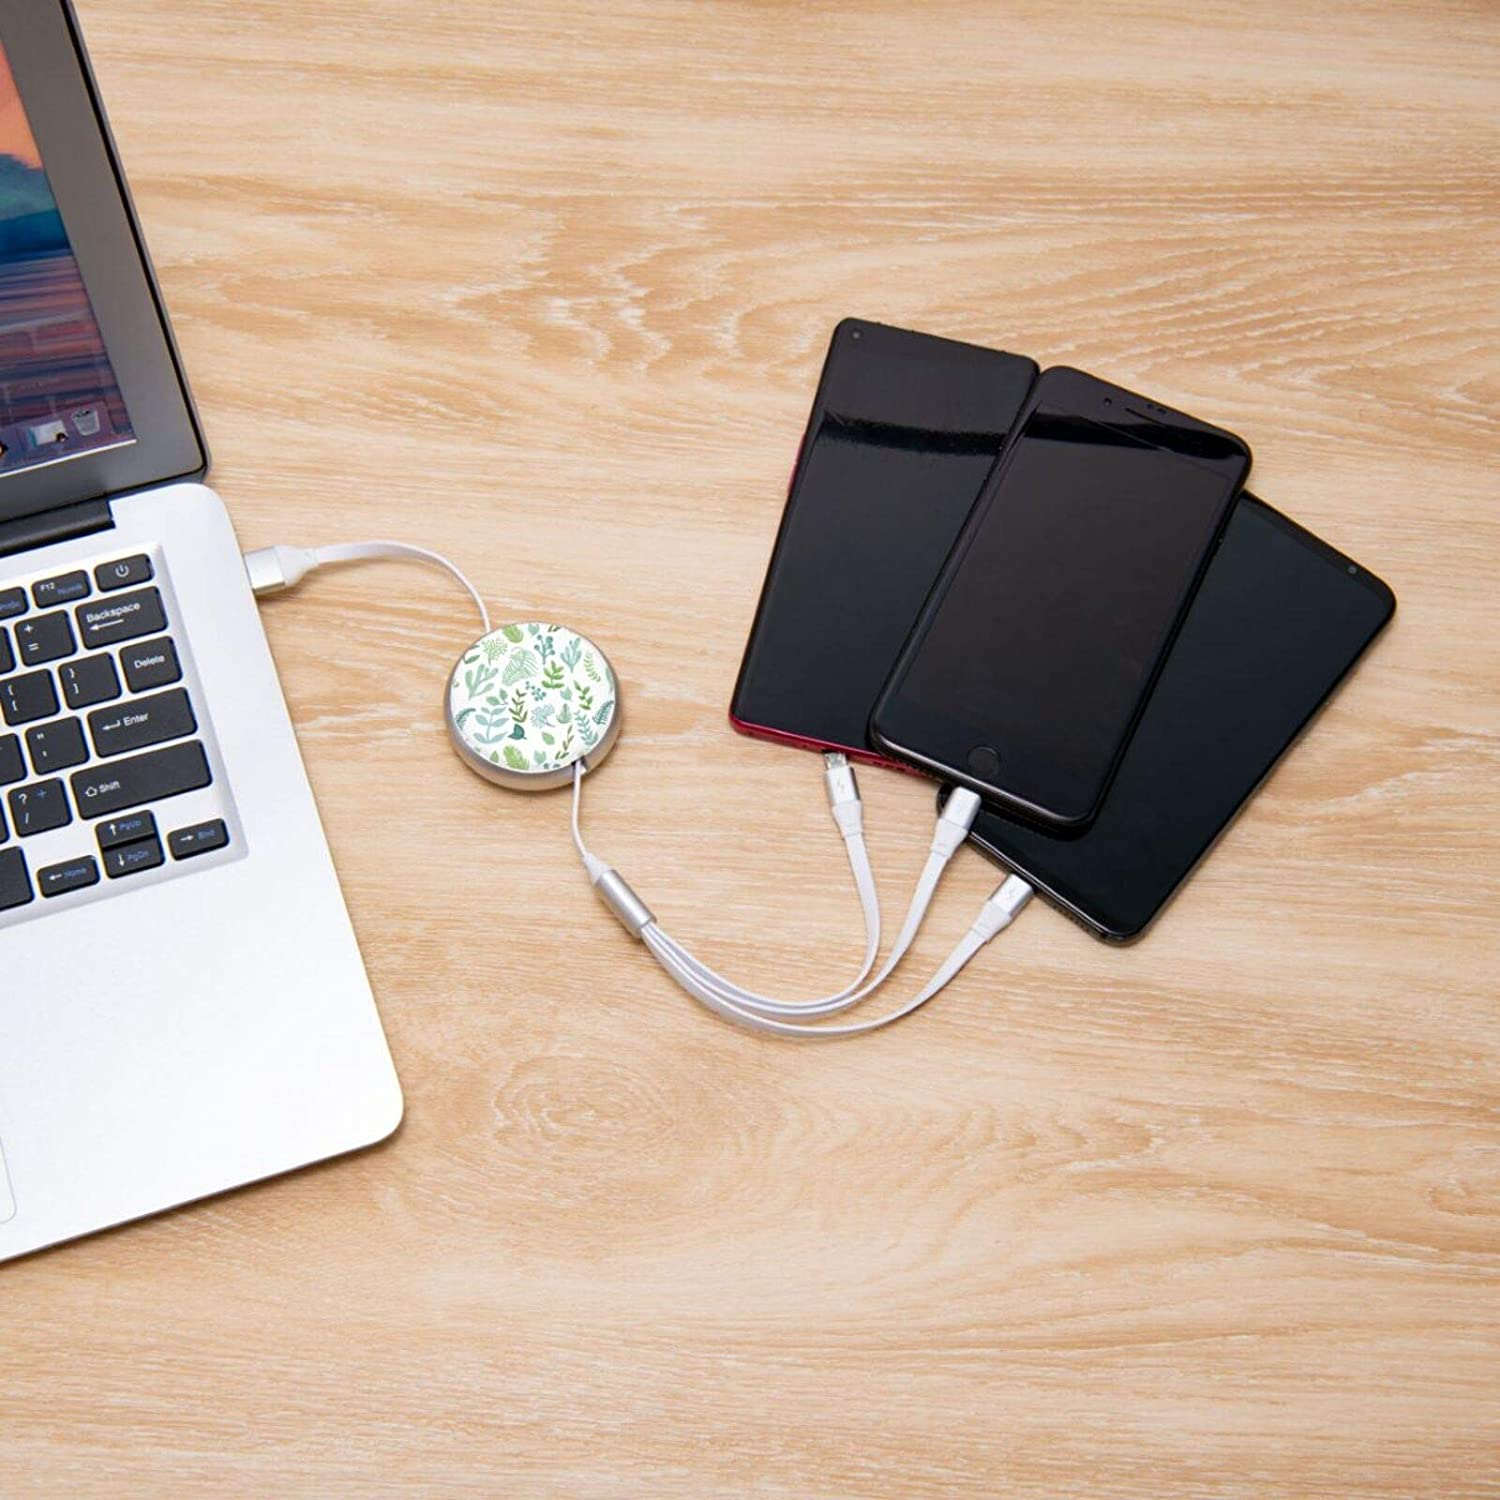 Leaves Round Retractable On The Go 3-in-1 Charging Cable Support Fast Charging and Data Sync 5 Adjustable Lengths USB Data Cable 3.0a Small Size Easy to Carry USB Data Cable